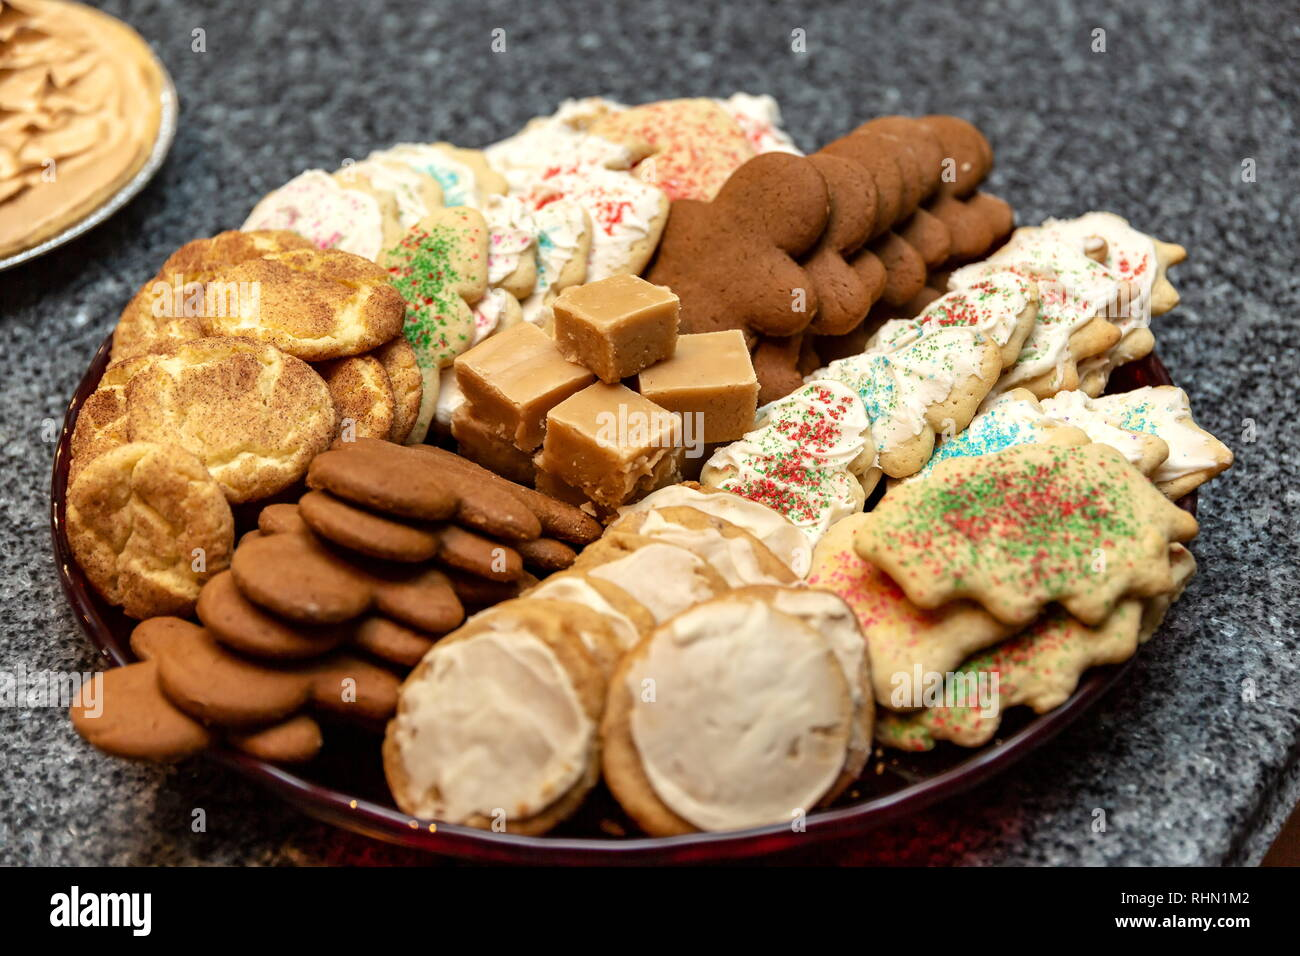 A Plate Of Traditional Holiday Cookies Ready For The Celebration